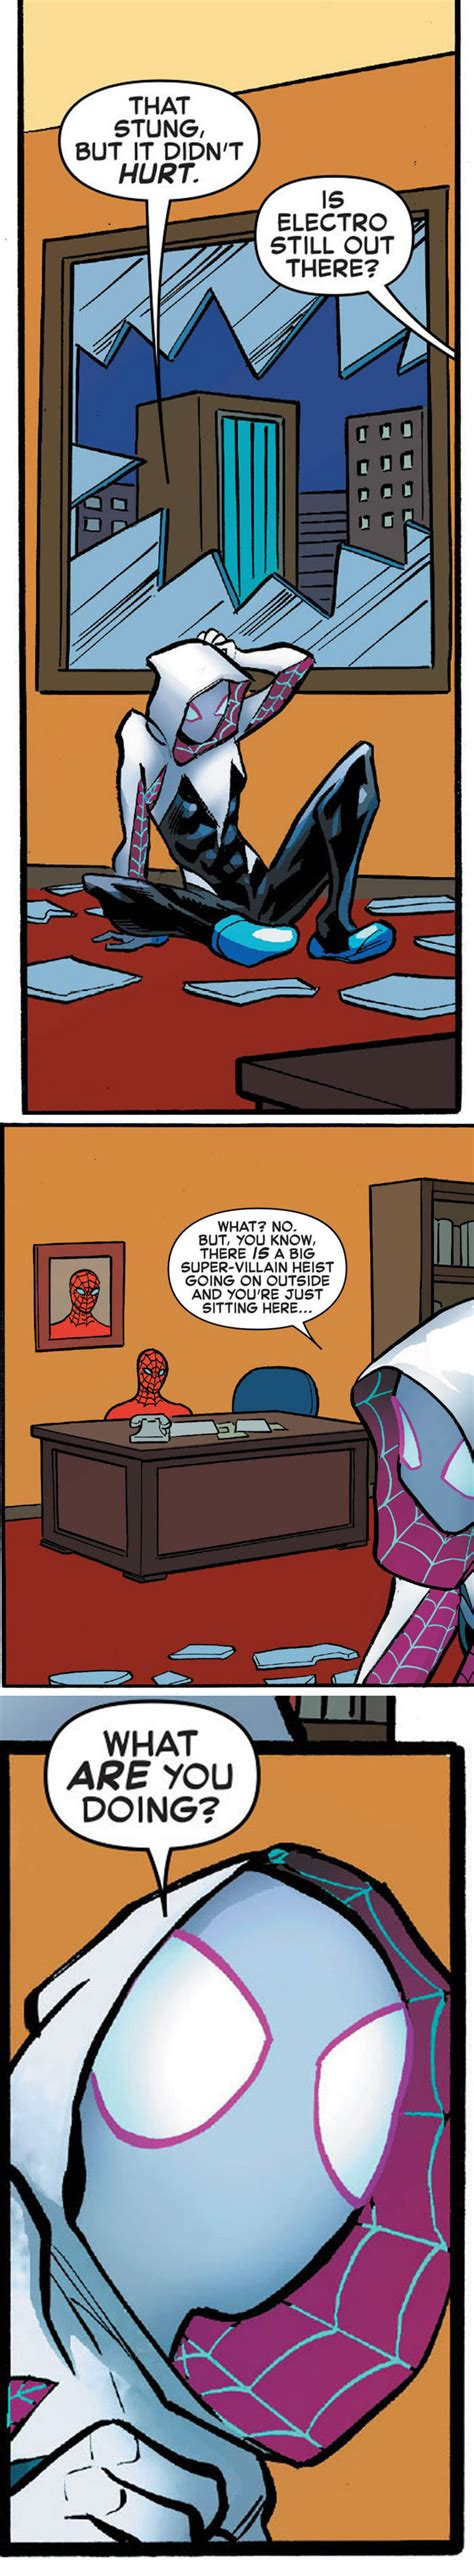 Spiderman Meme Masturbating - marvel used this spider man meme in a comic and i m just sitting here masturbating gewoon